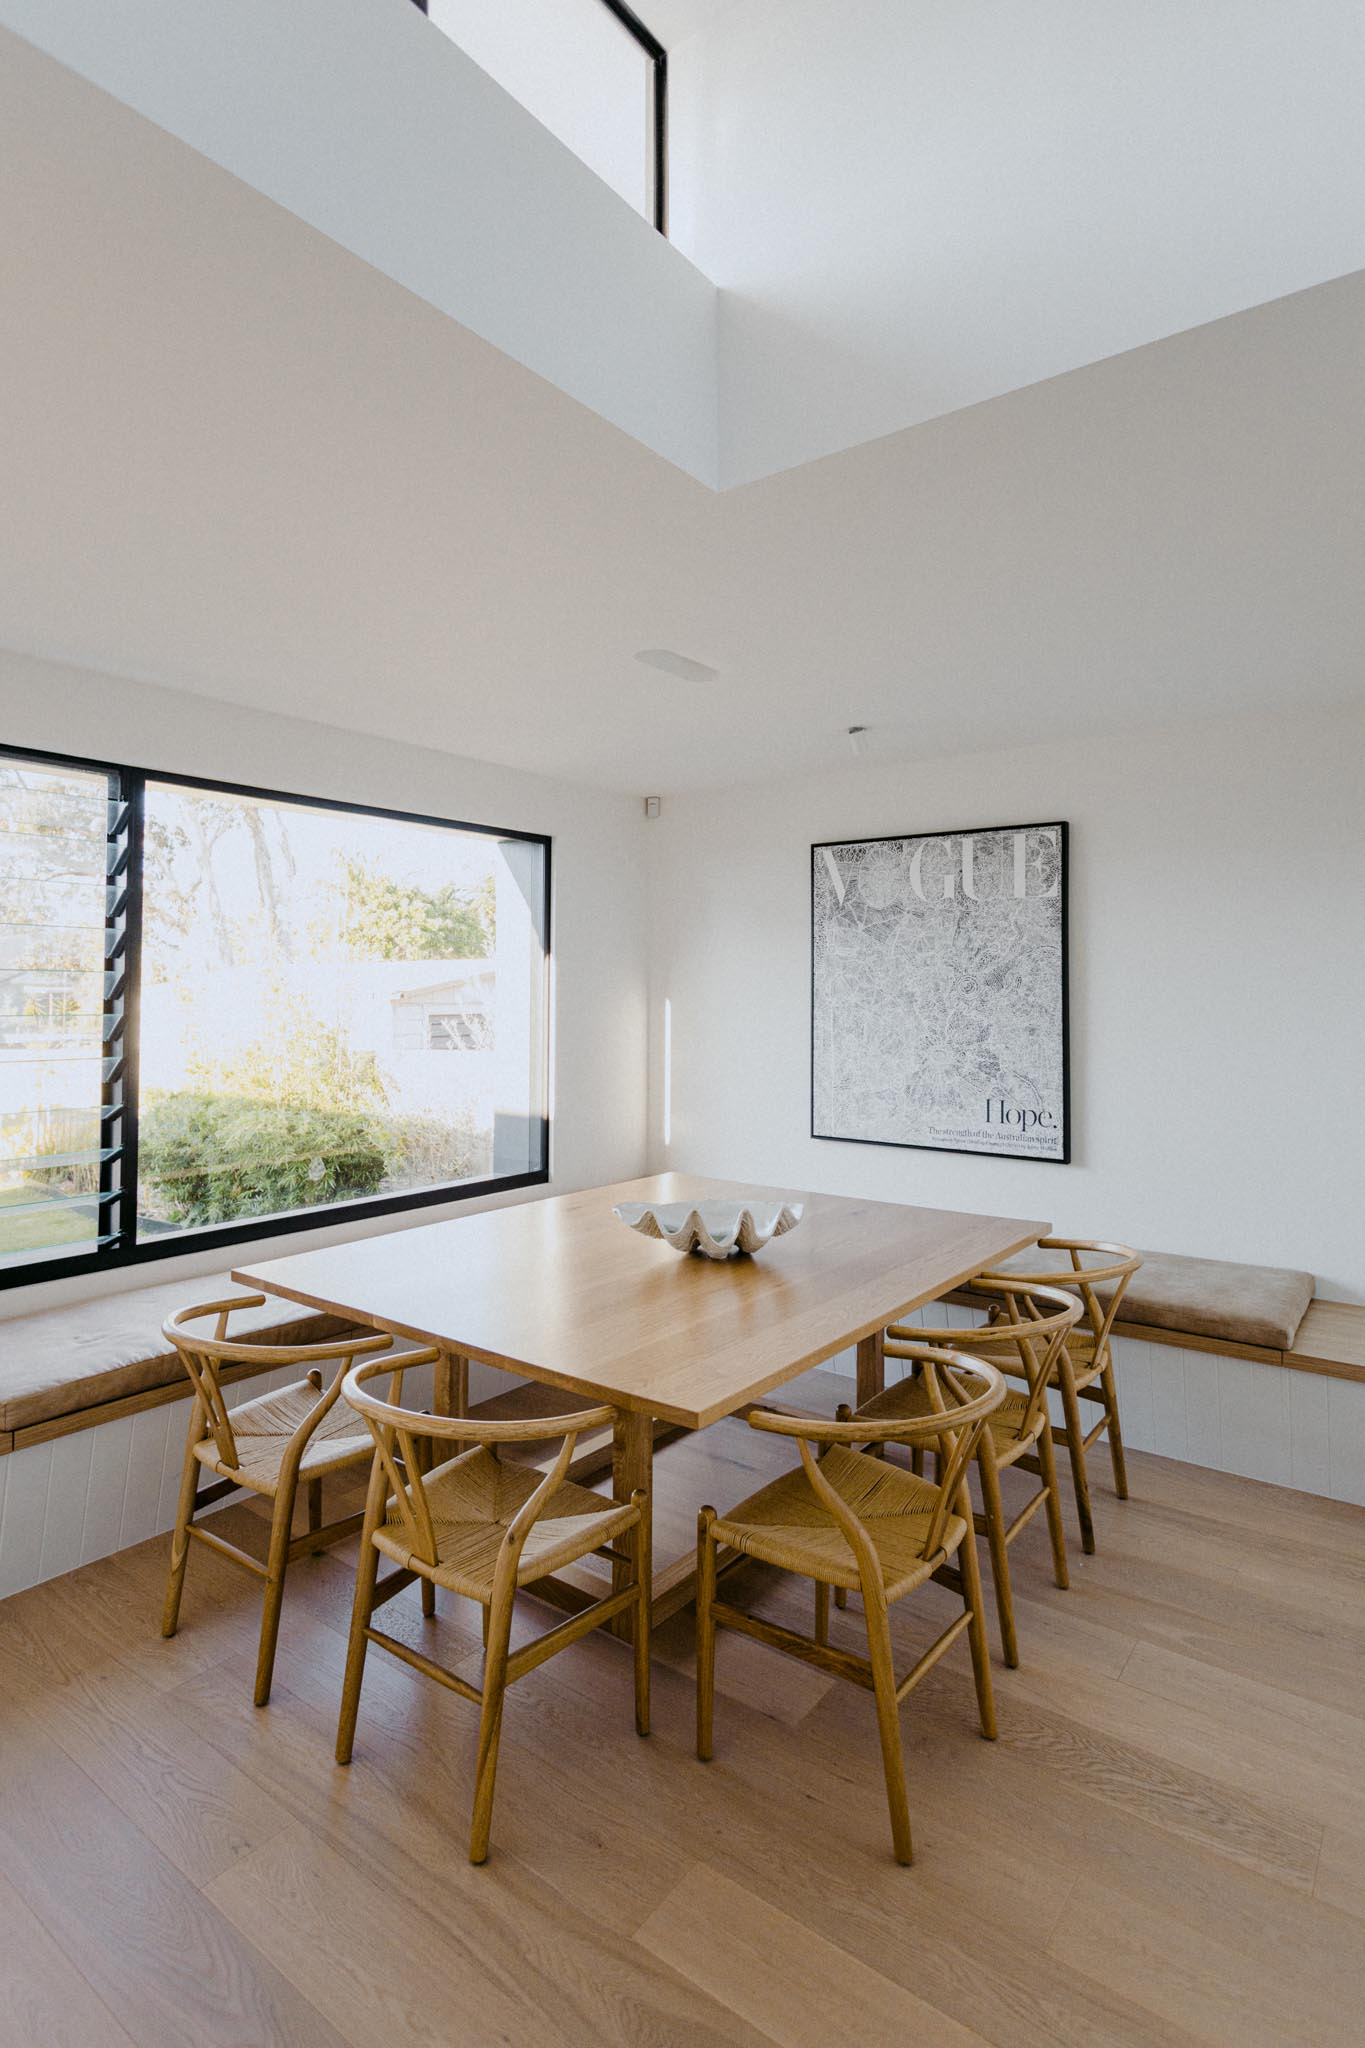 A modern dining room with benches that wrap around the corner of the room and provide plenty of seating when combined with the dining chairs.